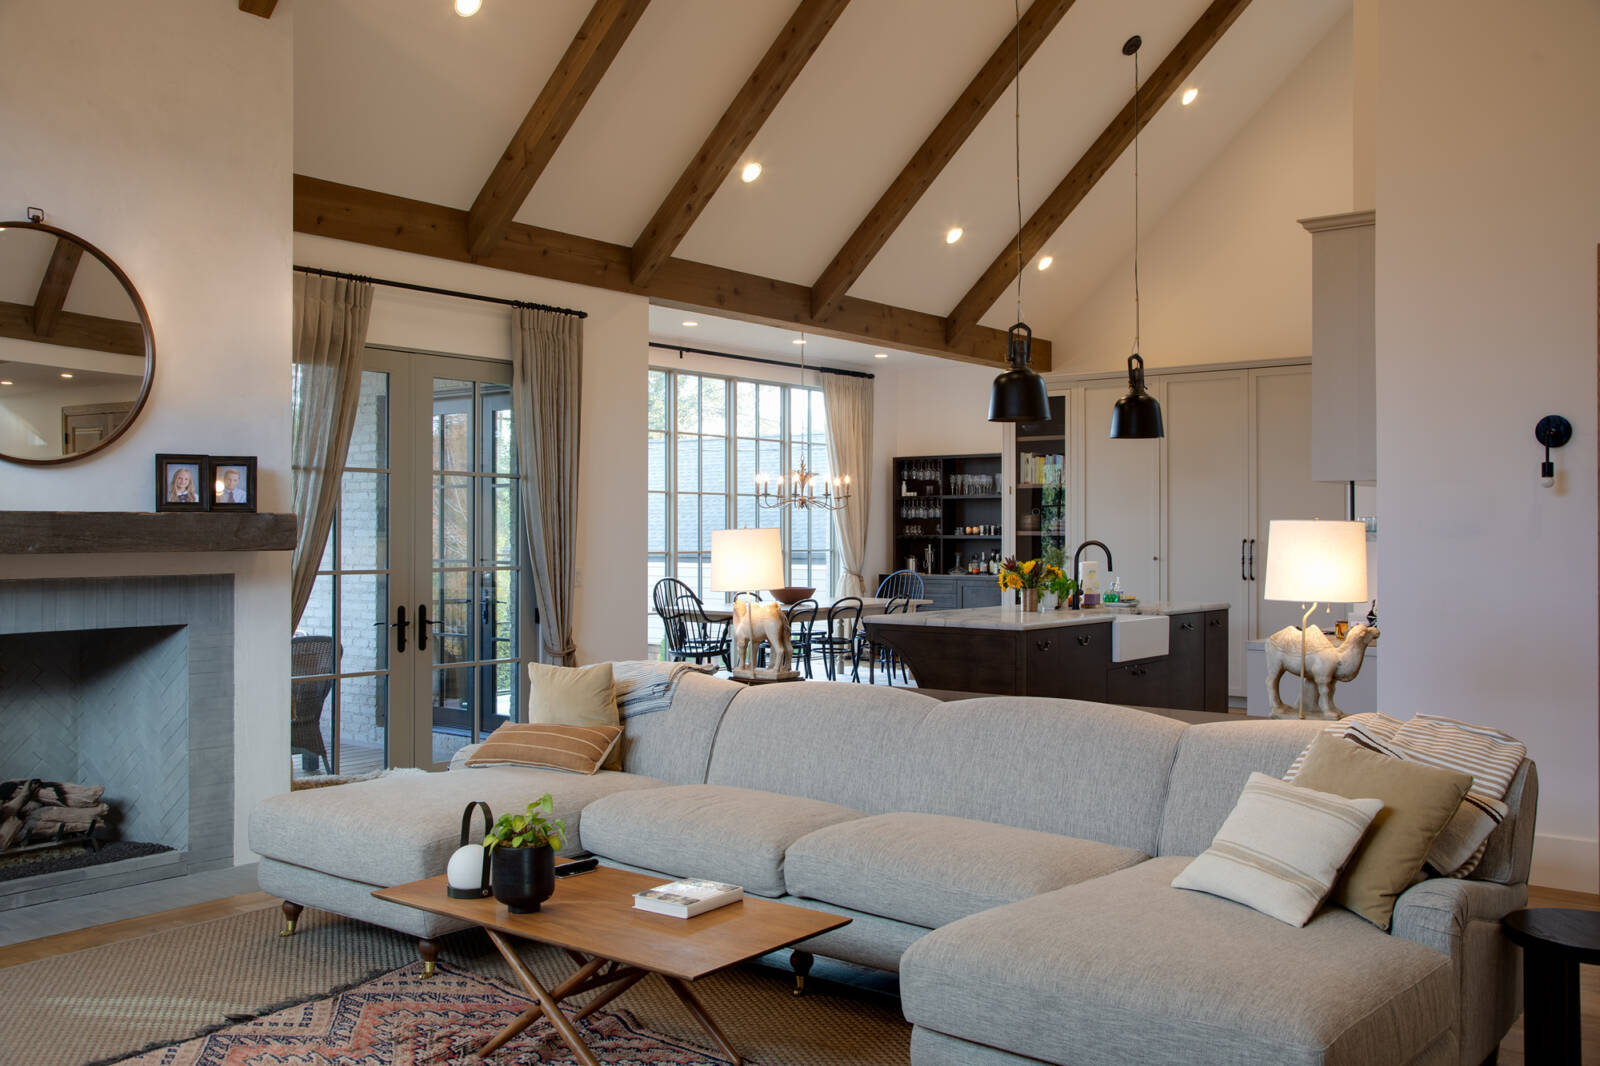 Great room ideas | Renovation Design Group